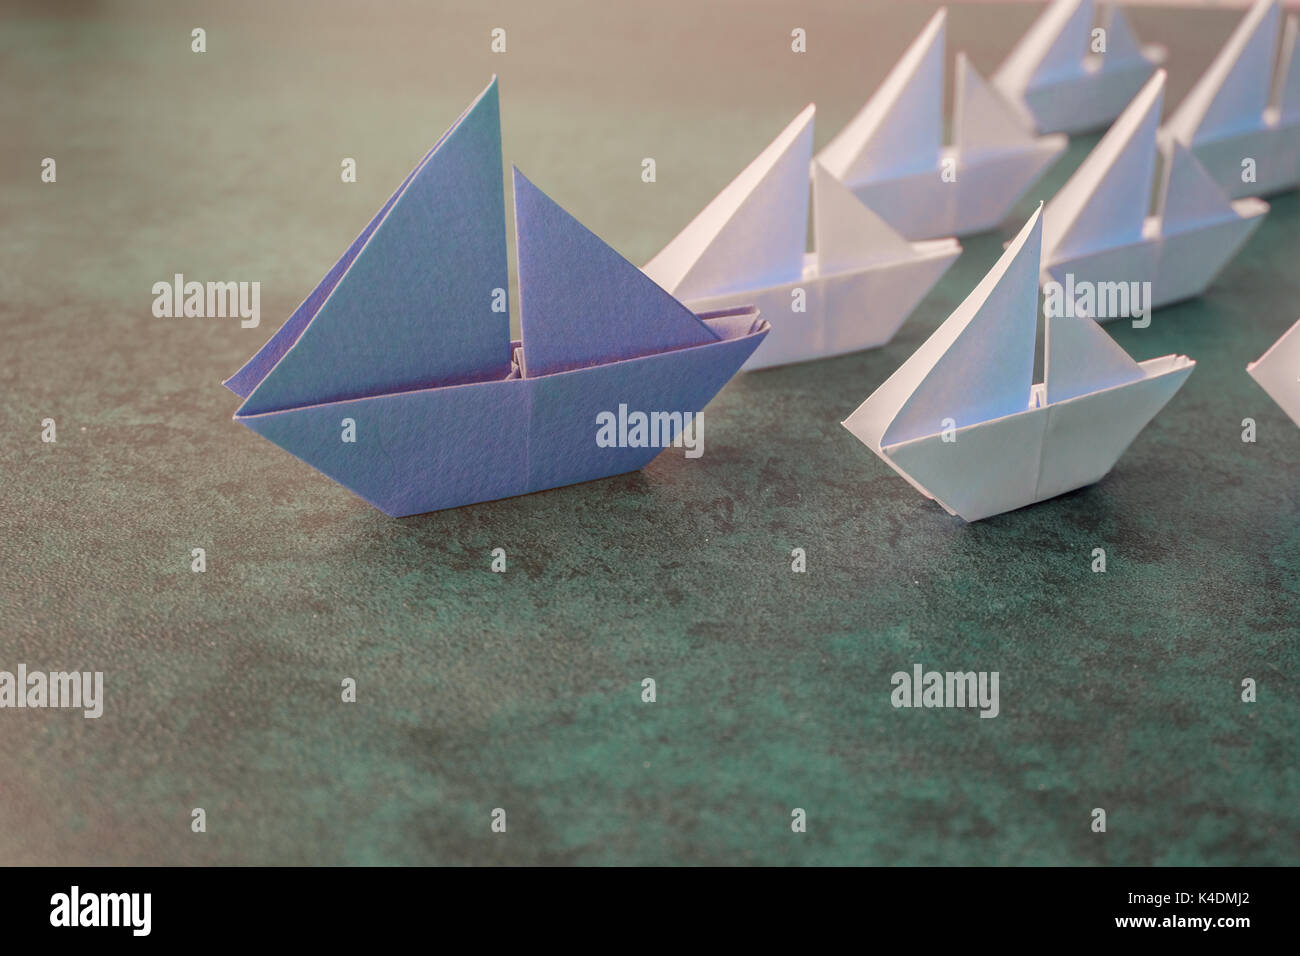 Papier Origami voiliers, leadership, tonification du concept d'entreprise Photo Stock